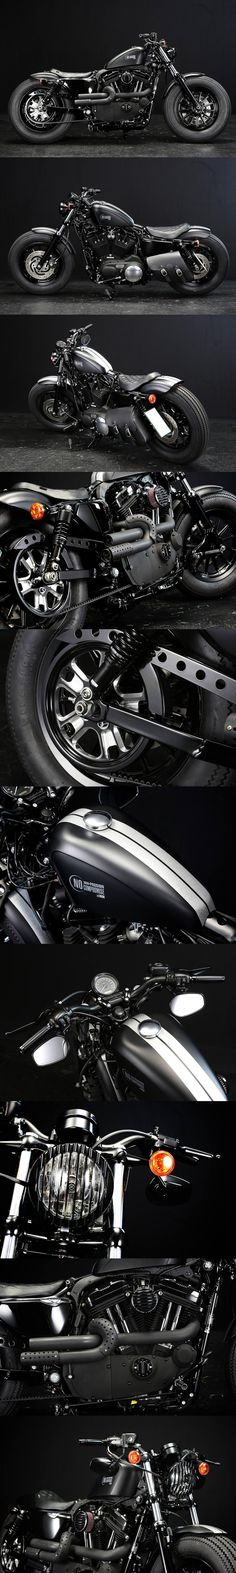 Harley-Davidson Sportster 48 Custom from Rough Crafts Call S .- Harley-Davidson Sportster 48 Custom von Rough Crafts Rufen Sie heute an oder sch… Harley-Davidson Sportster 48 Custom from Rough Crafts Call Today or Watch … – Motorcycles – - Harley Davidson Sportster, Sportster 48, Harley Davidson Chopper, Yamaha Virago, Harley Dyna, Davidson Bike, Ducati, Chopper Motorcycle, Motorcycle Style